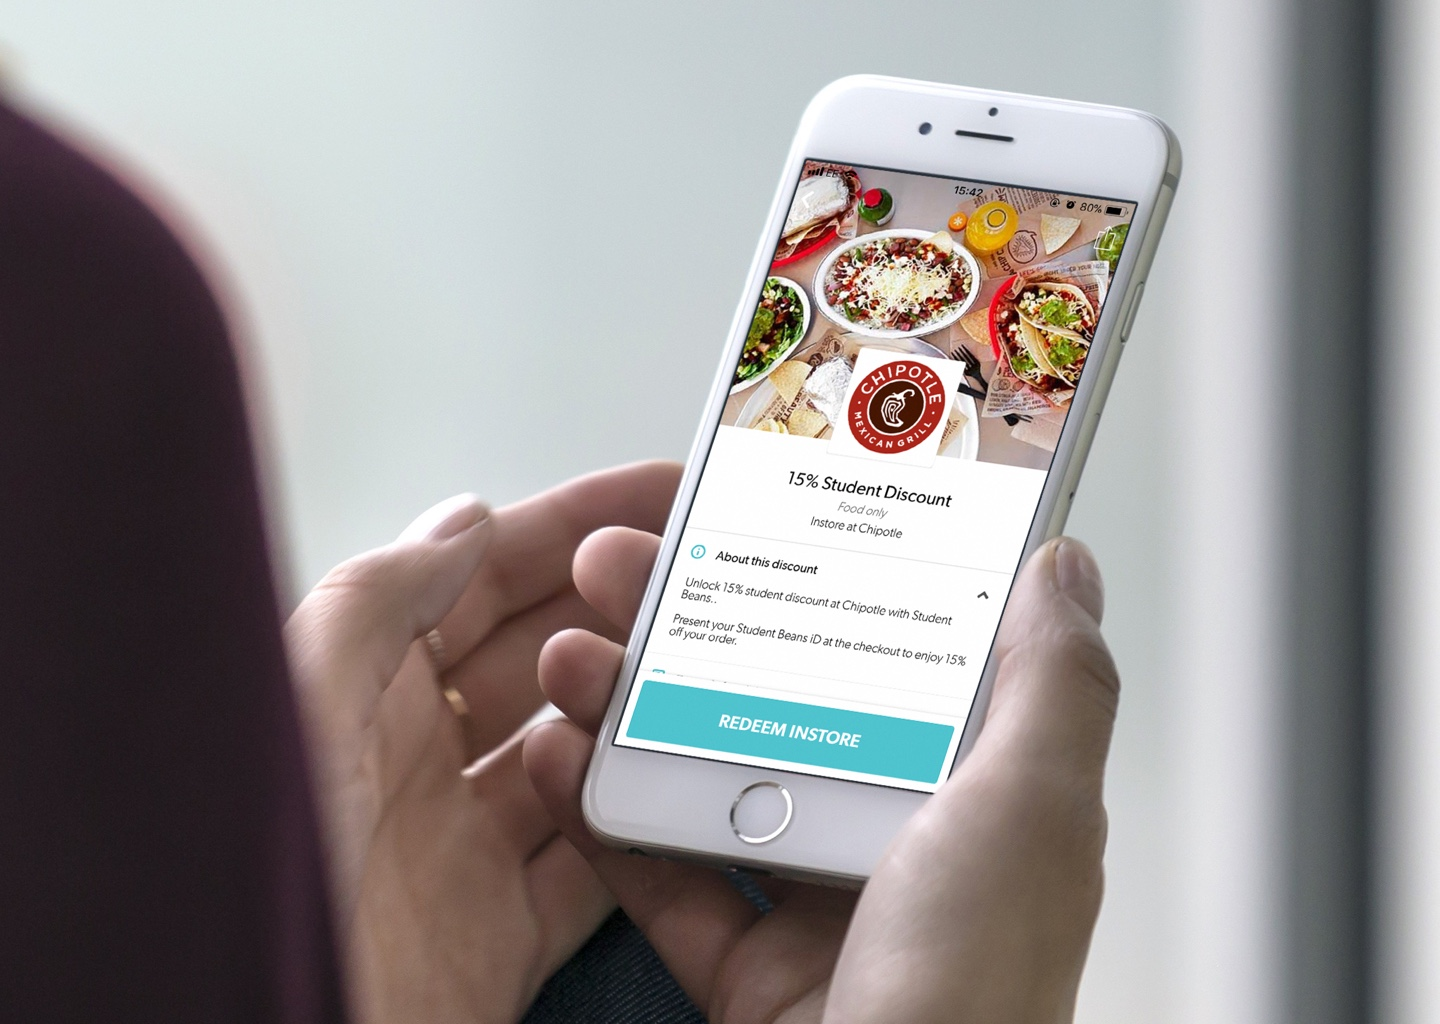 Your dedicated student discount screen - We provide you with your own dedicated student discount screen in the Student Beans app.